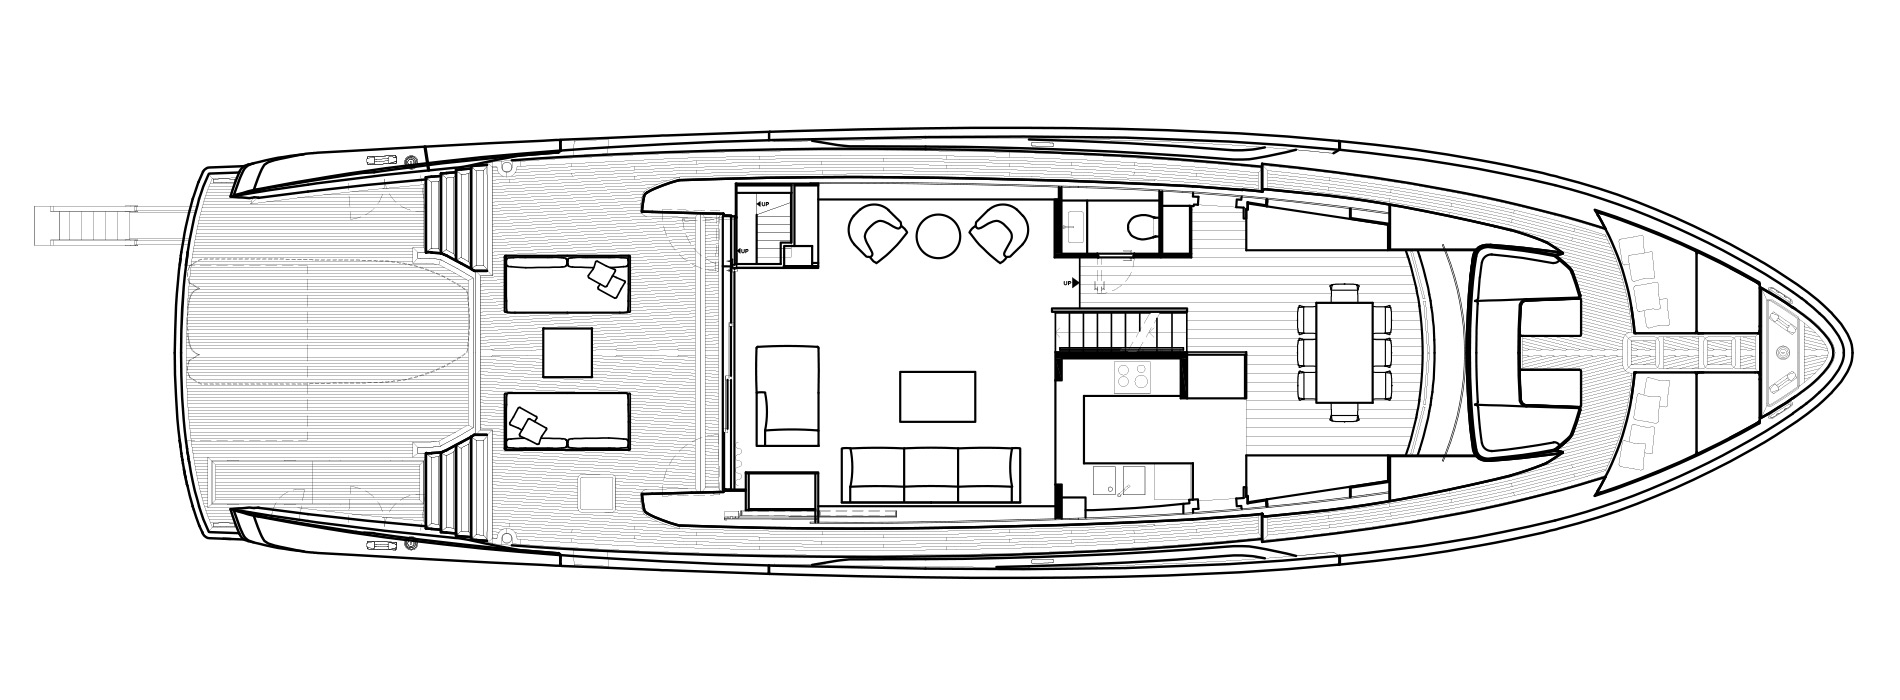 Sanlorenzo Yachts SX88 Main deck Version A Open Galley